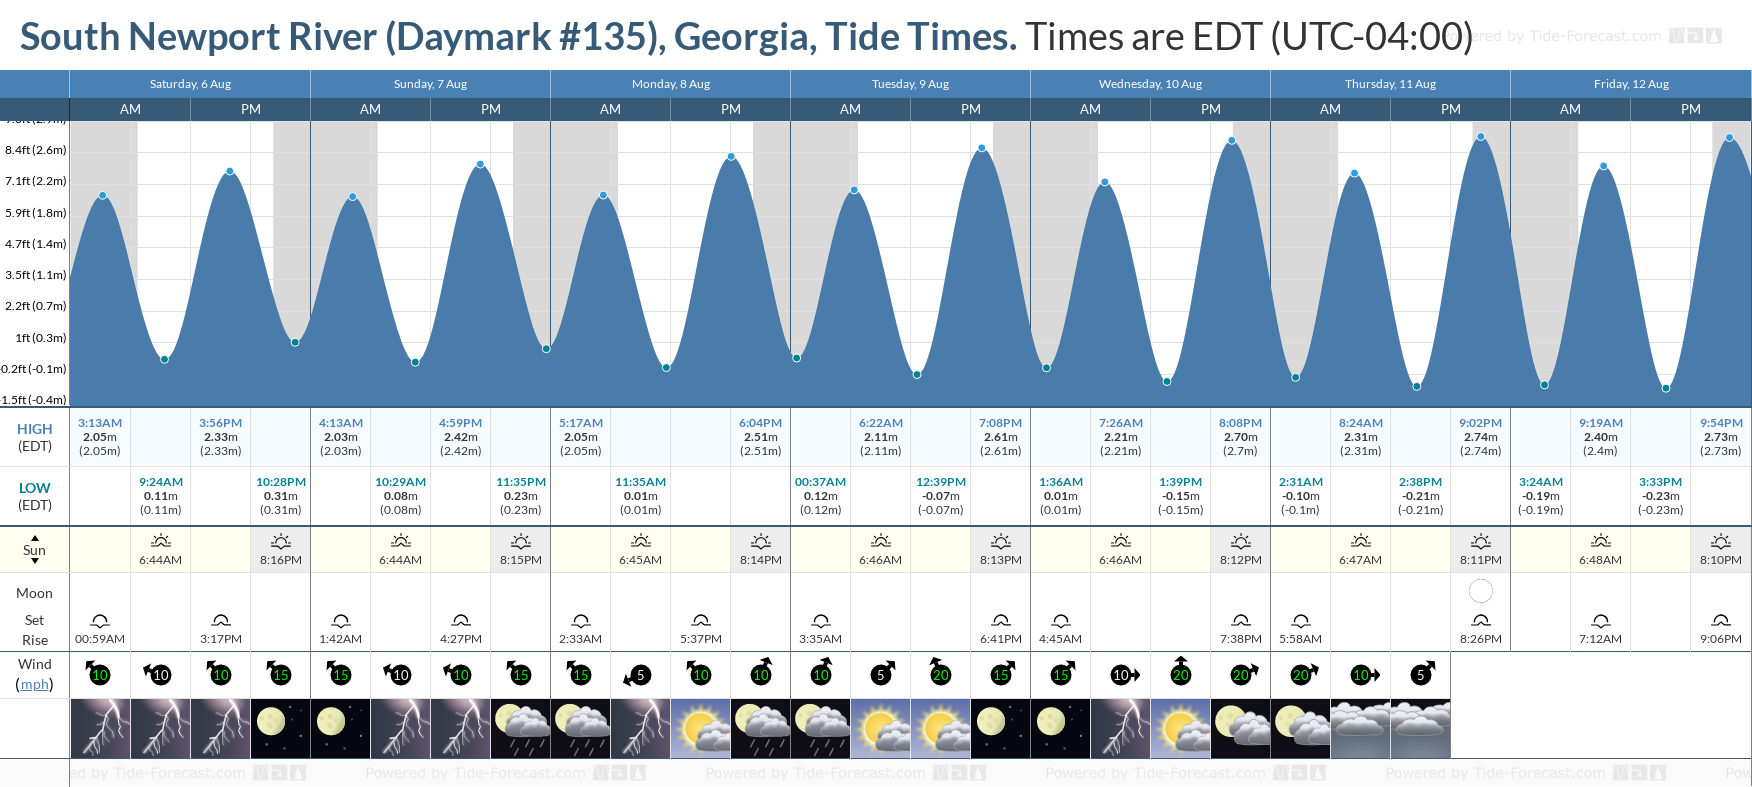 South Newport River (Daymark #135), Georgia Tide Chart including high and low tide tide times for the next 7 days